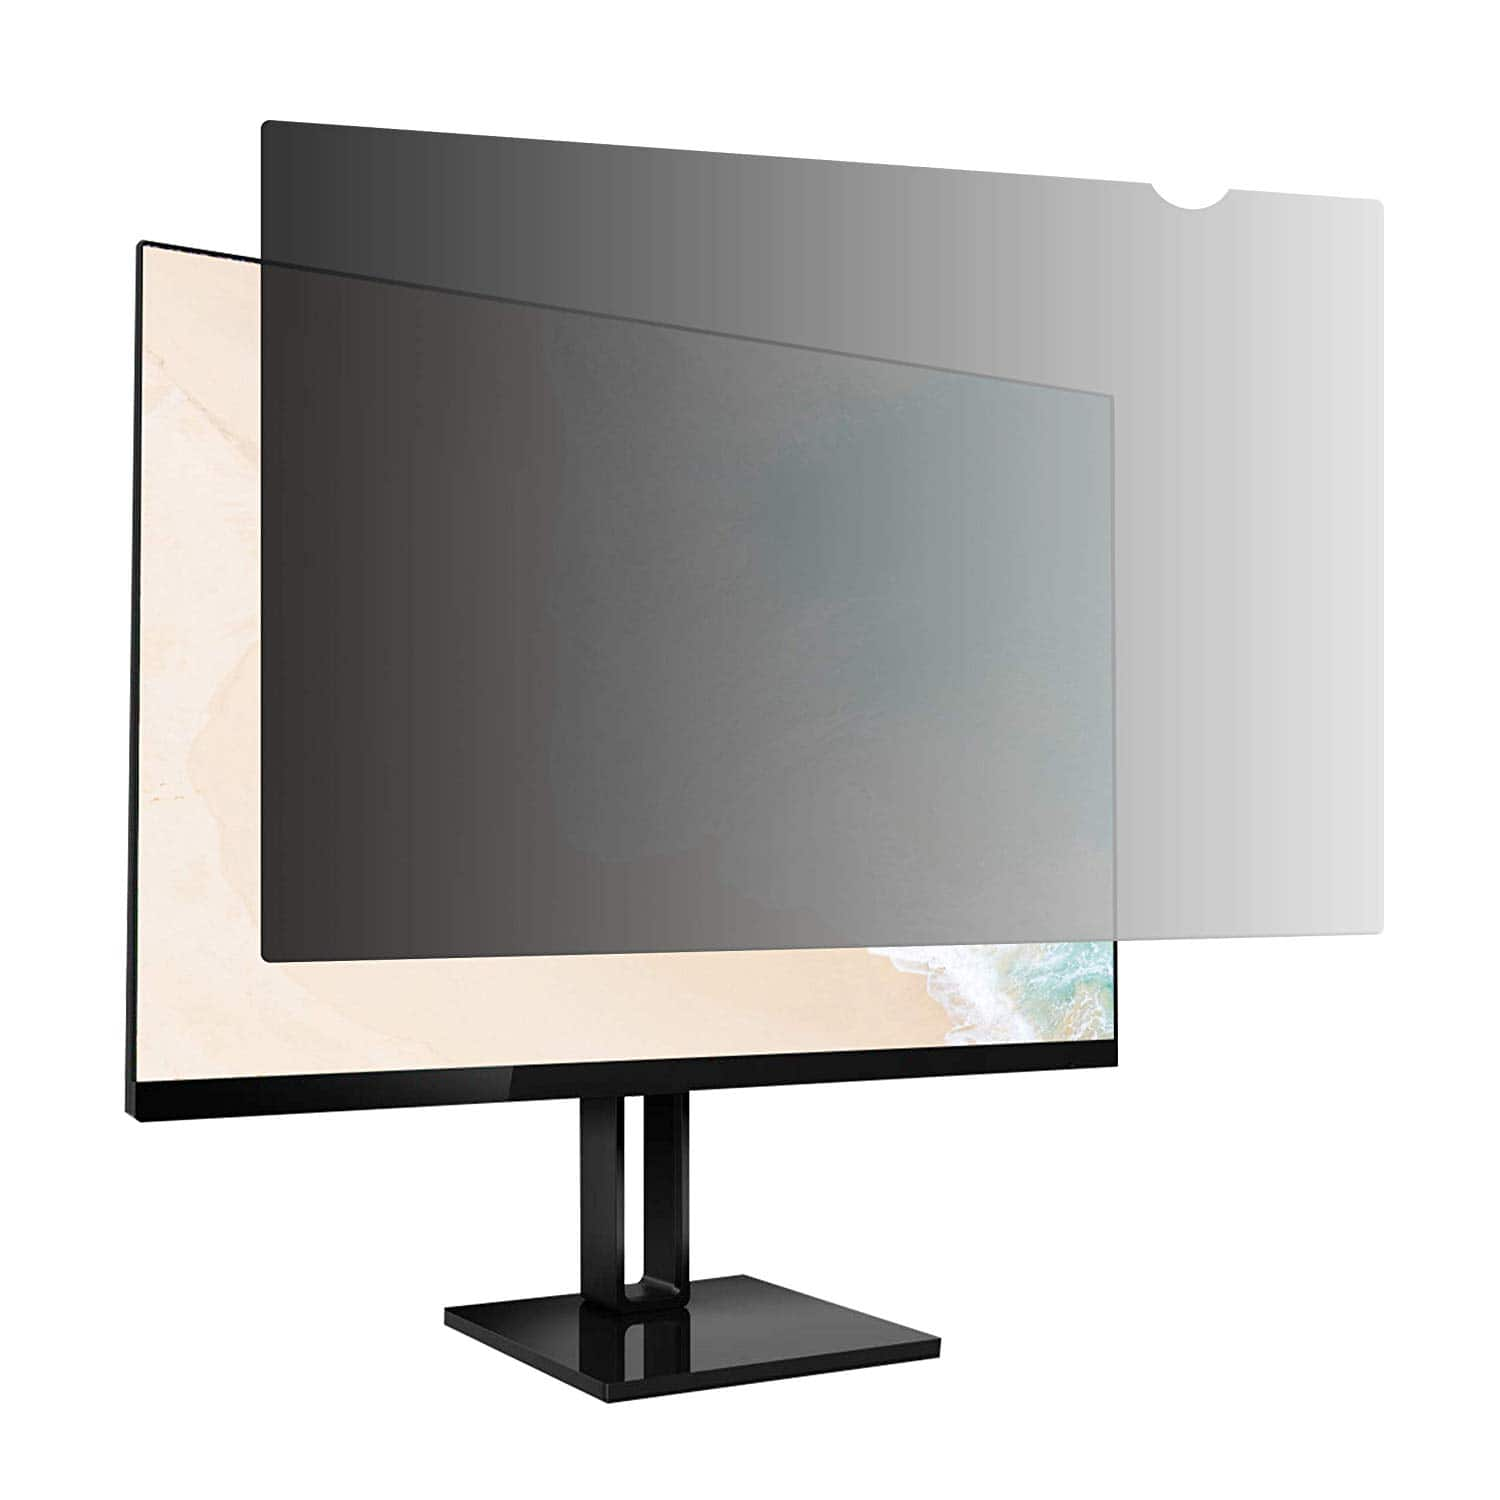 AmazonBasics Privacy Screen Filter for 13.3 Inch 16:9 Widescreen Monitor $19.06